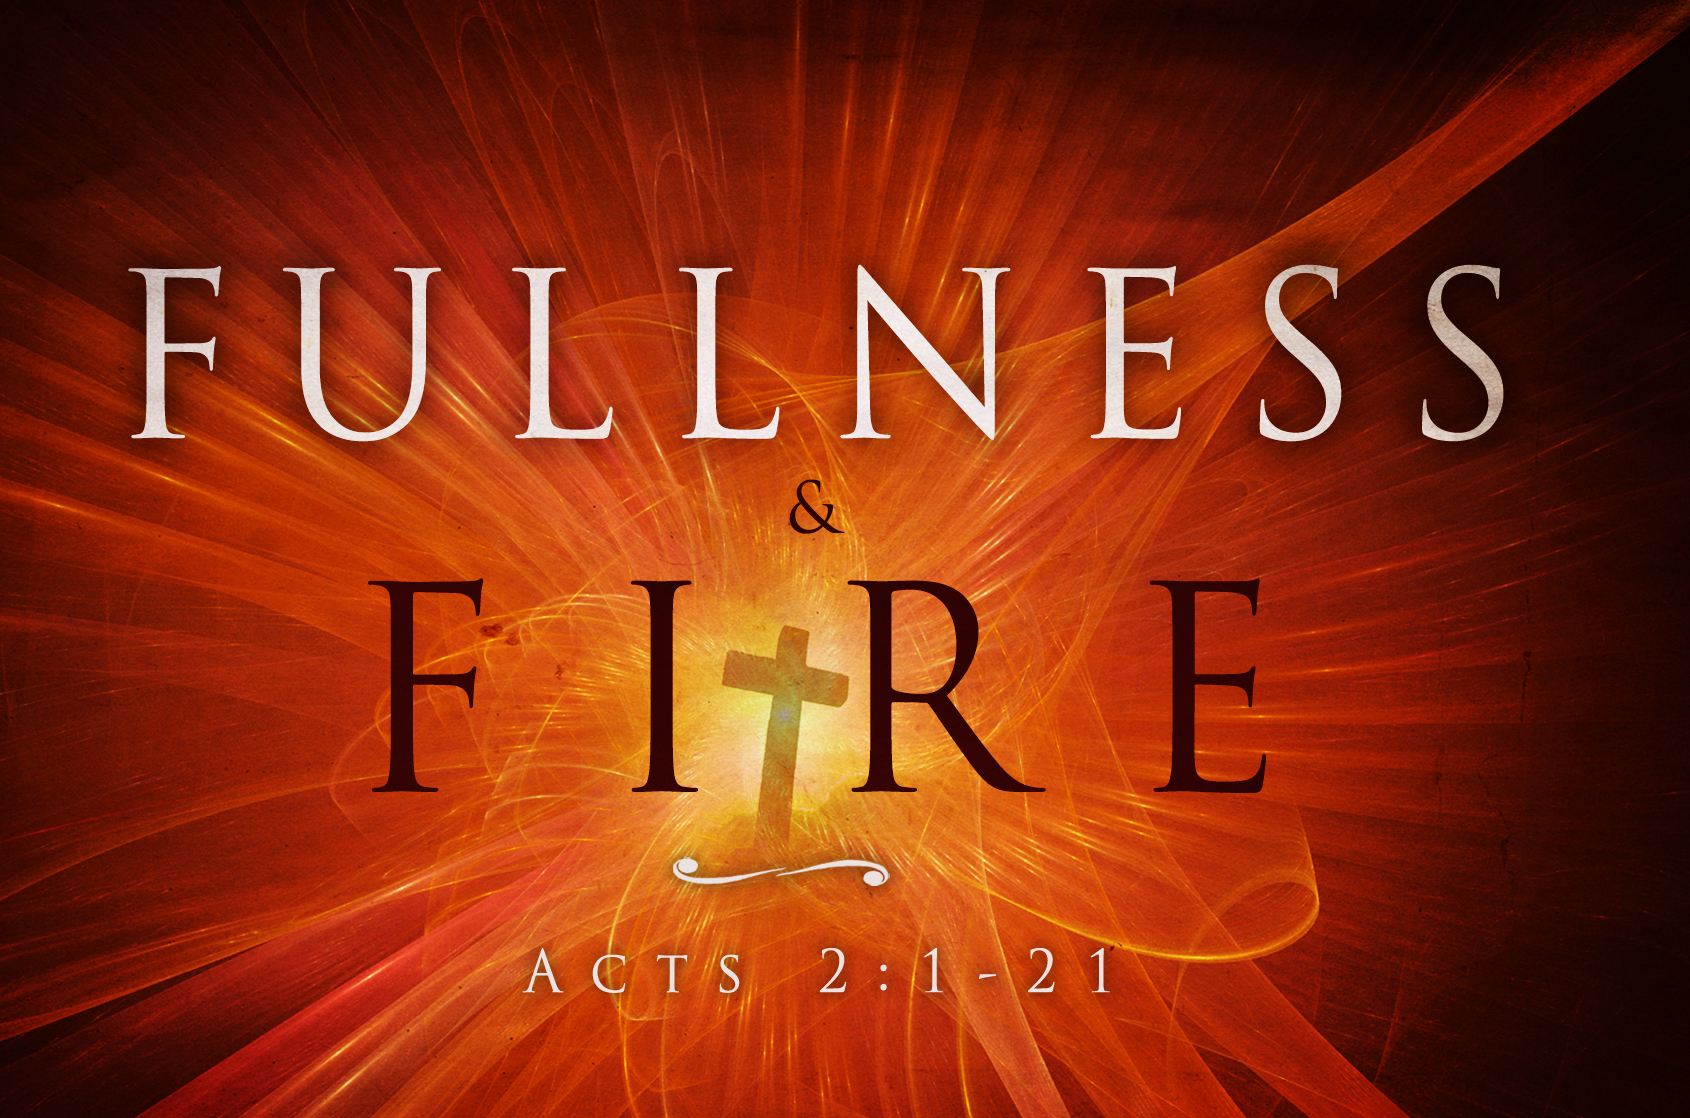 ALL OF GOD'S FULLNESS!